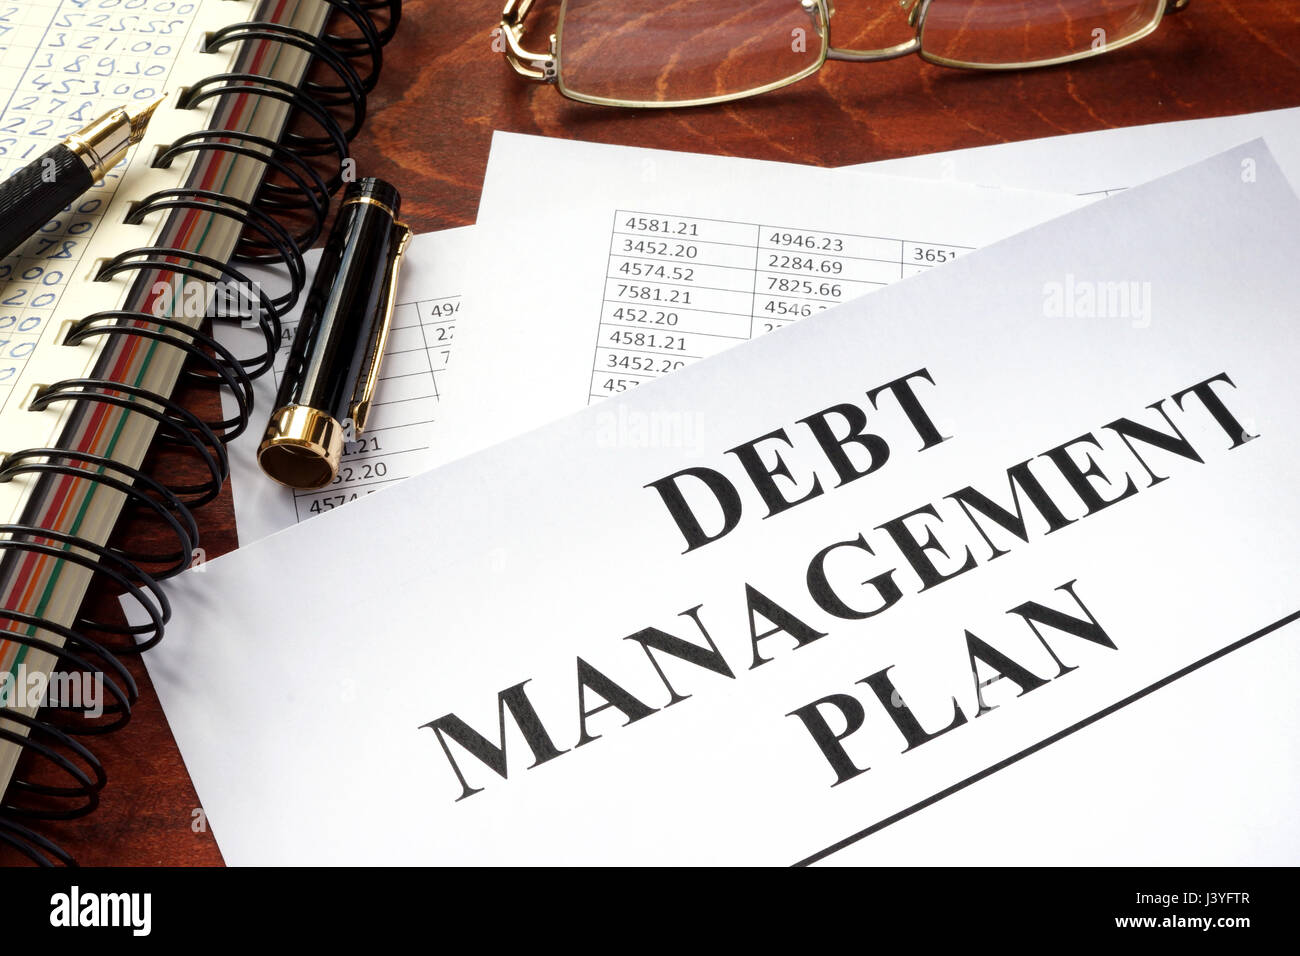 Document with title debt management plan DPM. - Stock Image